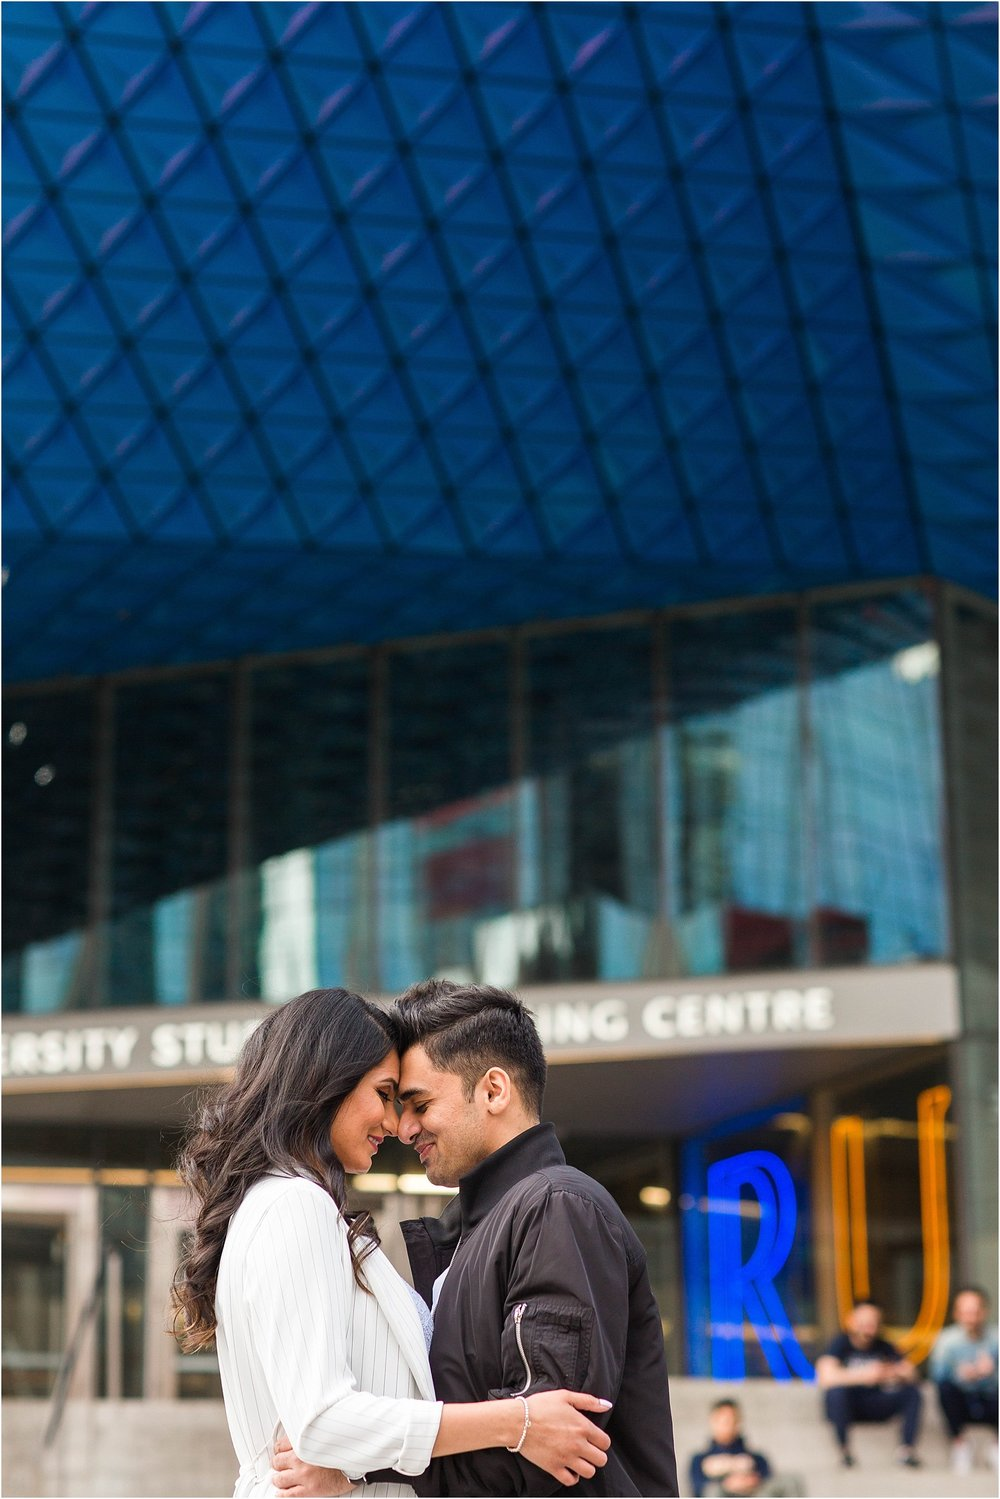 Ryerson-University-Humber-Bay-Bridge-Engagement-Session-Toronto-Mississauga-Brampton-Scarborough-GTA-Pakistani-Indian-Wedding-Engagement-Photographer-Photography_0020.jpg